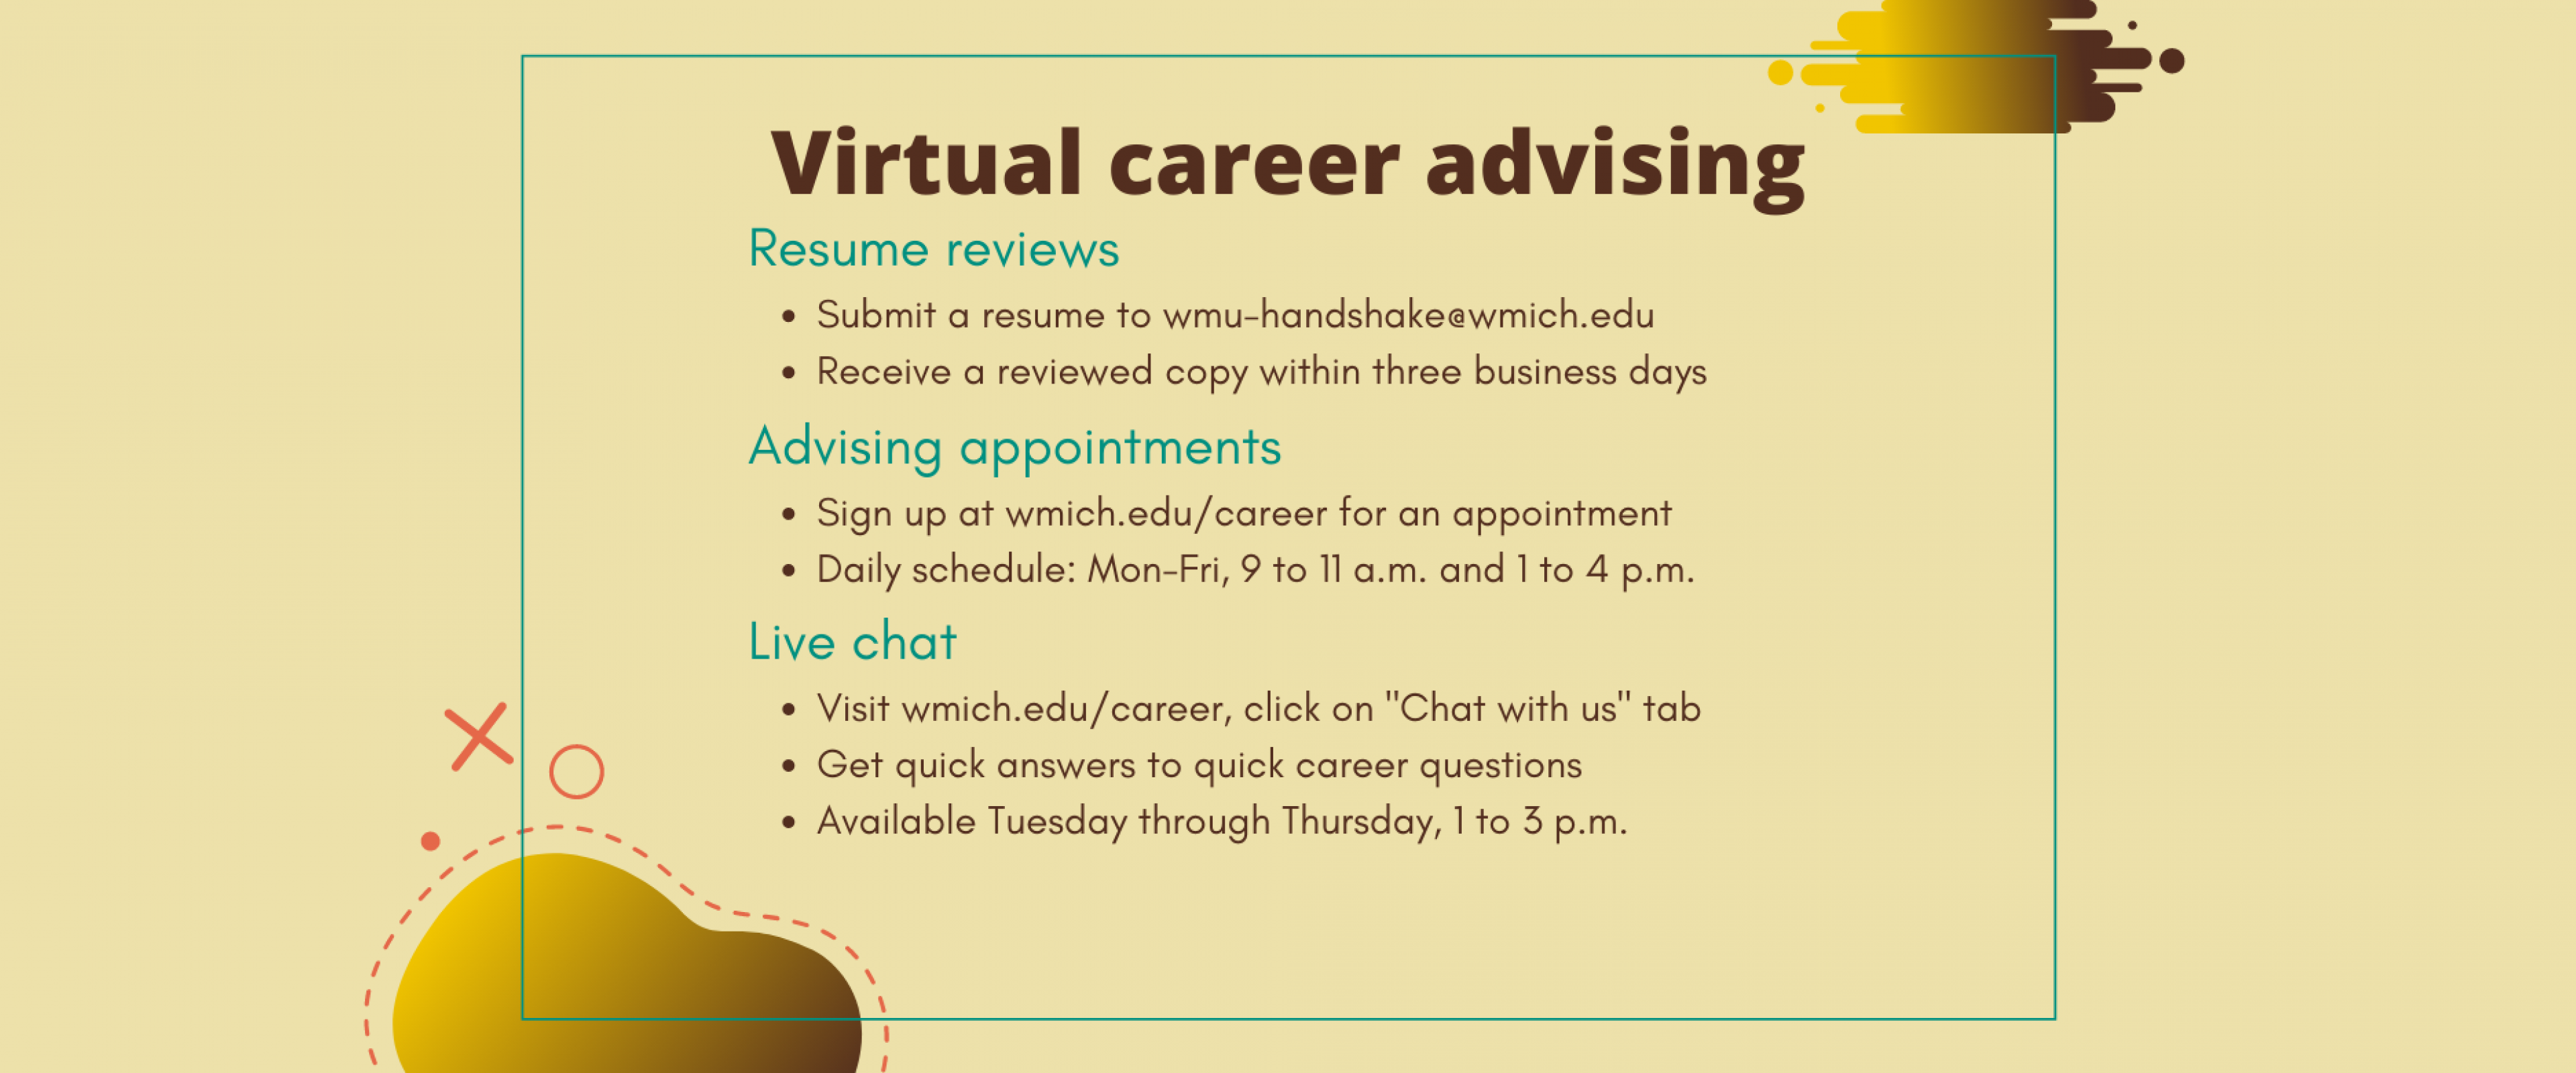 "Virtual career advising - 1) Resume reviews: submit a resume to wmu-handshake@wmich.edu and receive a reviewed copy within three business days; 2) Advising appointments: sign up at wmich.edu/career for an appointment, daily schedule is Monday through Friday 9 to 11 a.m. and 1 to 4 p.m.; 3) Live chat: visit wmich.edu/career, click on the ""Chat with us"" tab, get quick answers to quick career questions, available Tuesday through Thursday 1 to 3 p.m."